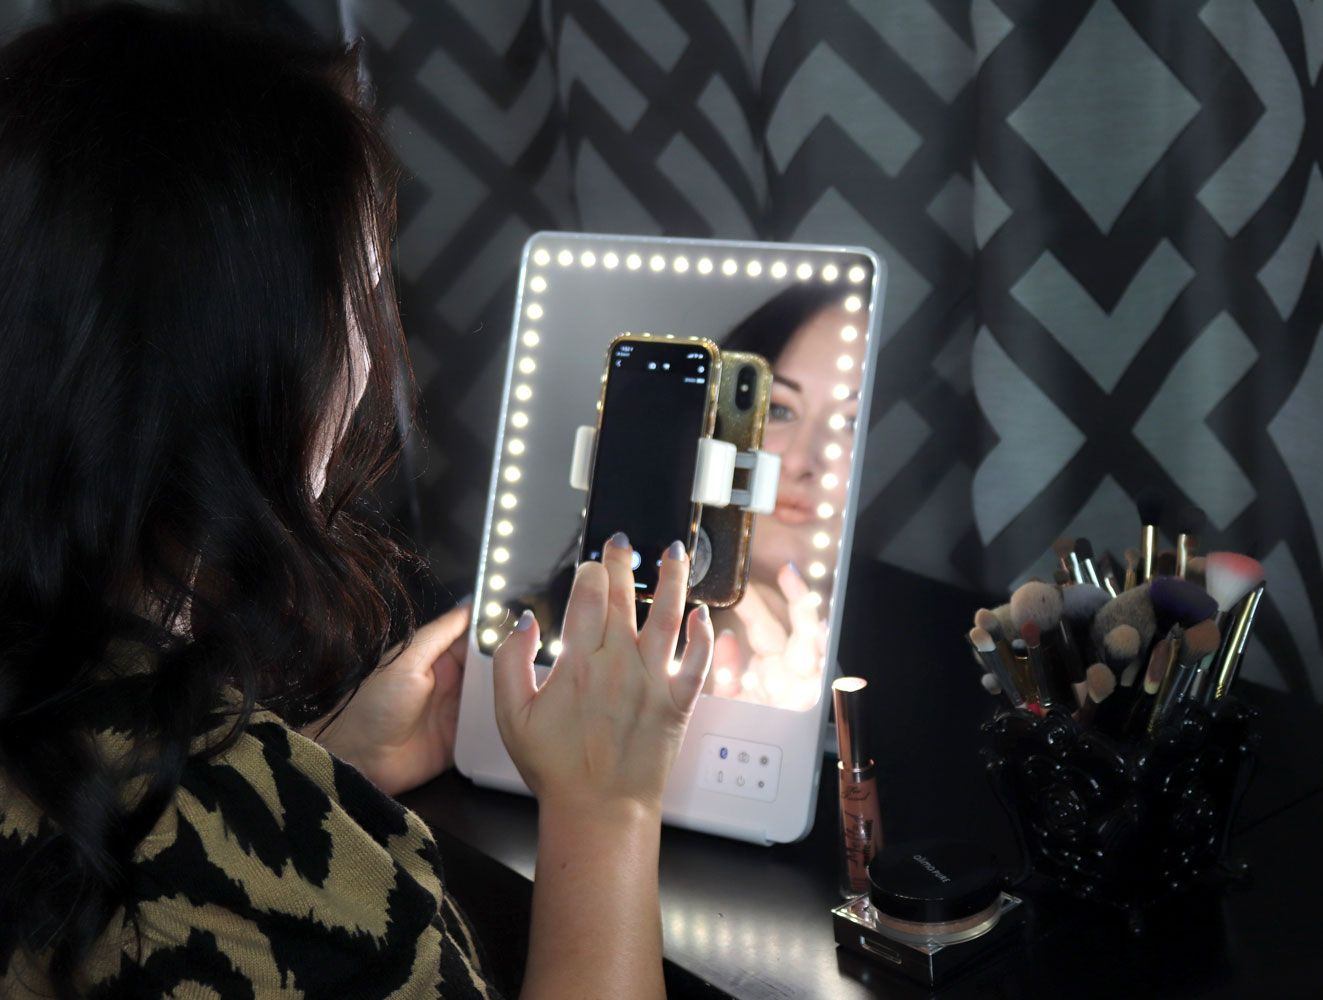 Glamcor Riki Skinny Vs Riki Tall Lighted Selfie Mirrors Review Makeup Mirrors Makeup Mirror Riki Skinny Mirror